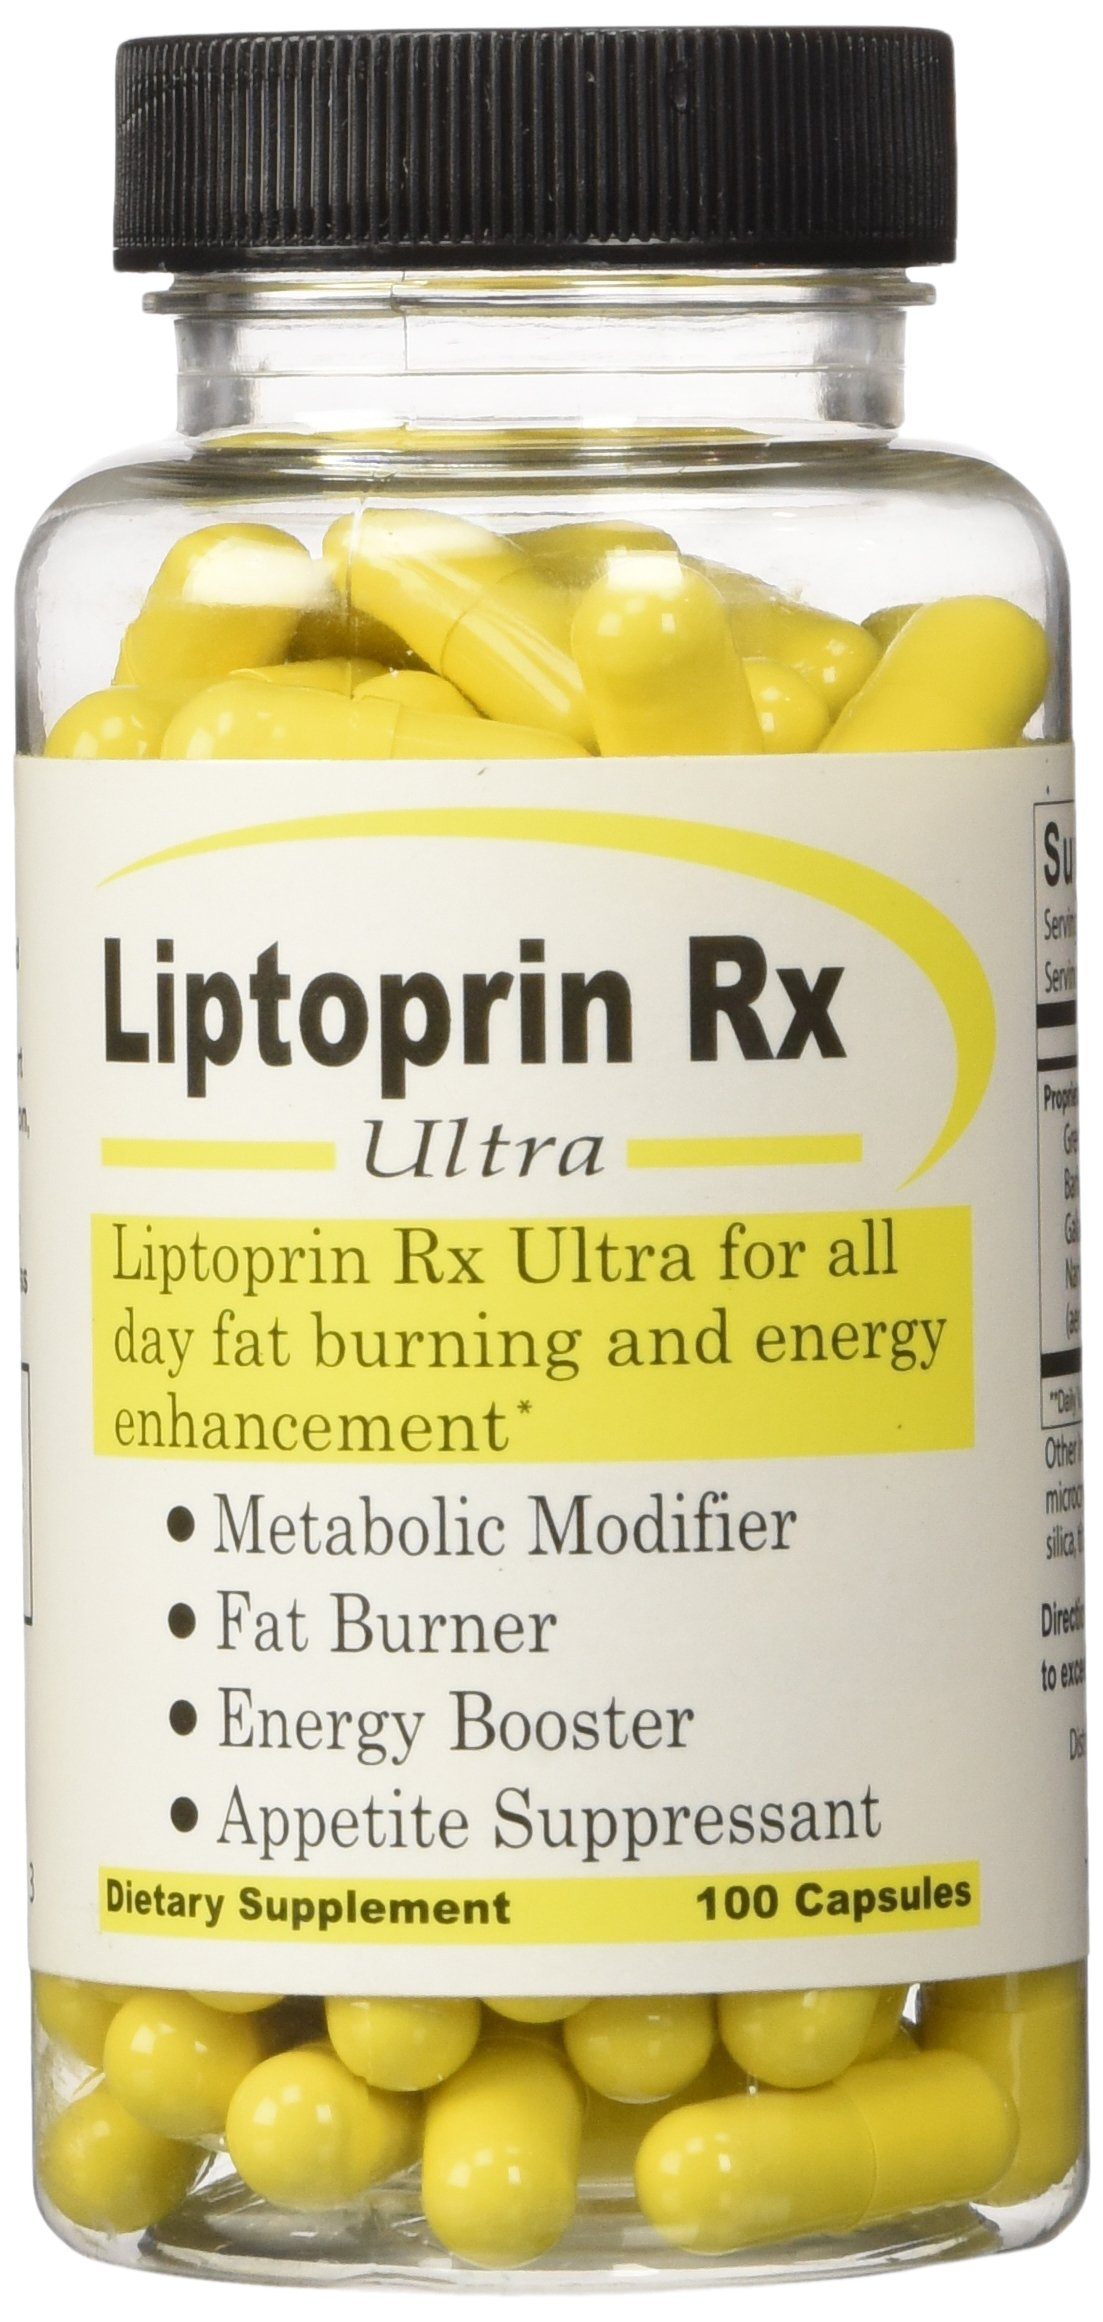 Liptoprin-Rx Ultra - Best Metabolism Booster Diet and Weight Loss Supplement Fat Burner Appetite Suppressant Pills Lose Weight Fast Natural Energy Booster 100 Capsules by Liptorpin-Rx